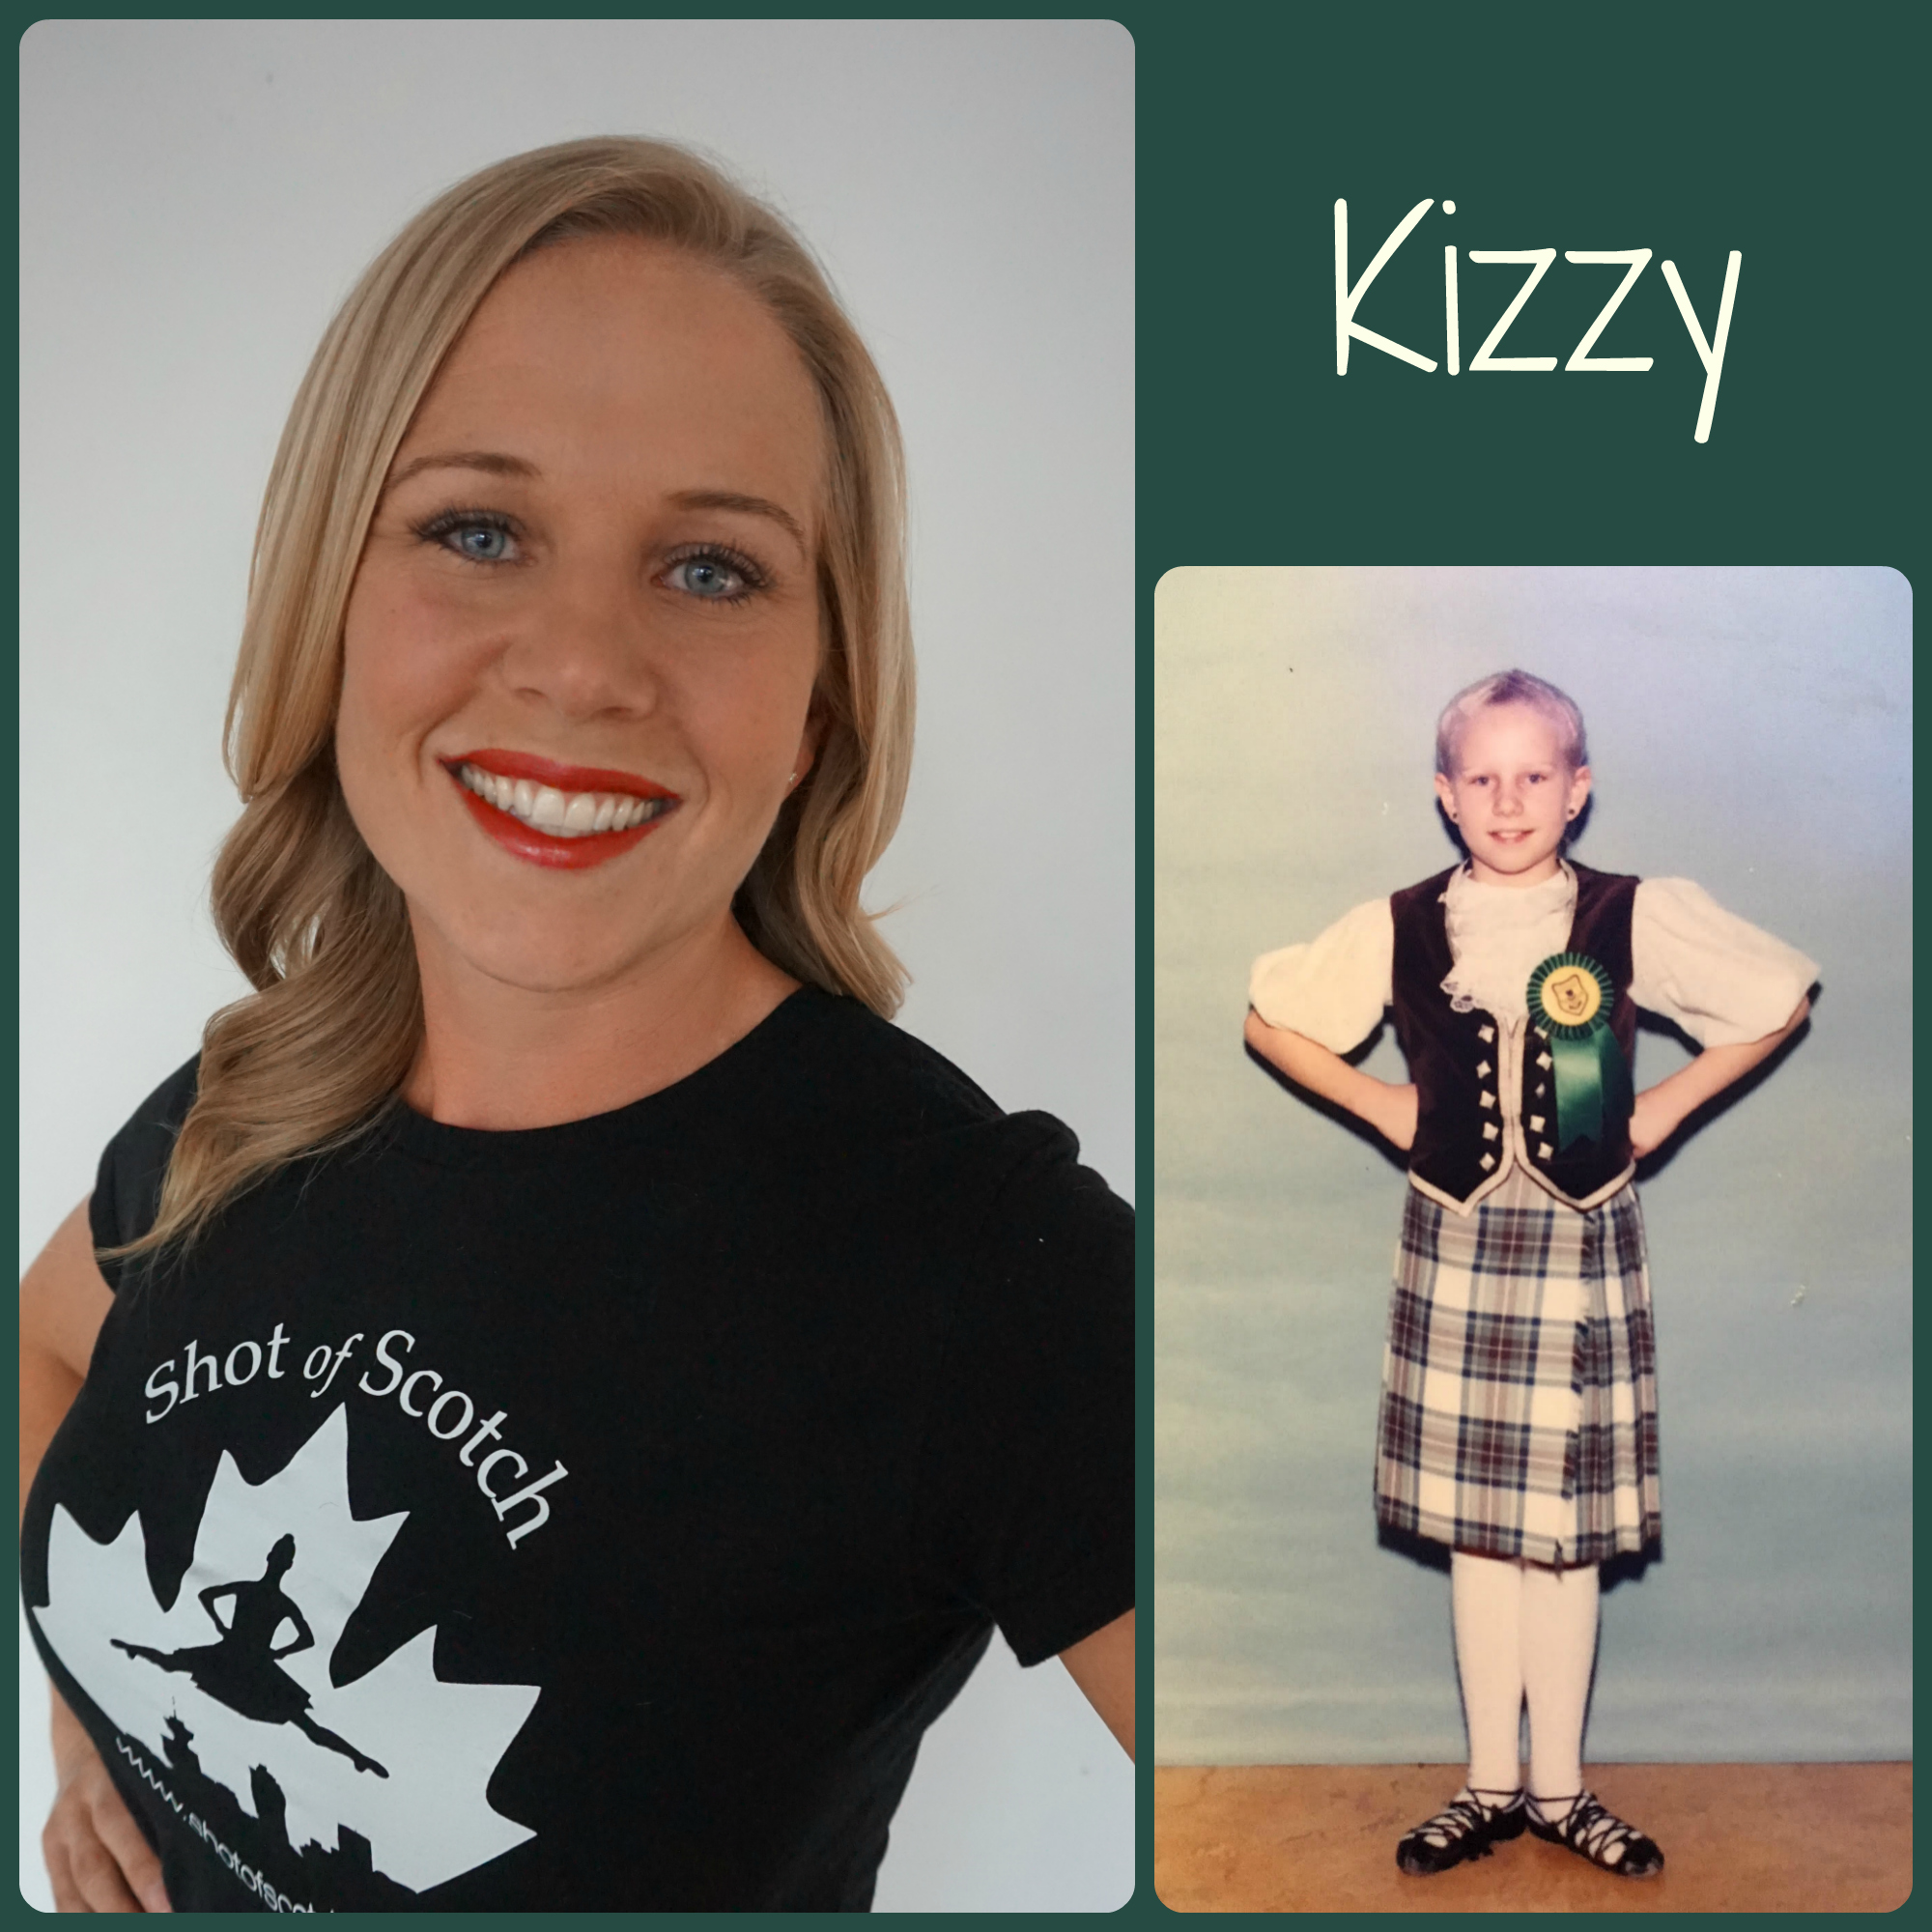 "Kizzy Knorn   SoS Title: Apprentice Dancer/Costume Coordinator  Hometown: Langley, BC  ""Real Life"" ID: Kindergarten Teacher  Favourite Highland Dance Memory: Competing at the Highland games every summer with friends  Random and Mostly True Fact: Kizzy is her real name. It's not a nickname and it's not short for anything. It comes from the book Roots by Alex Haley!"